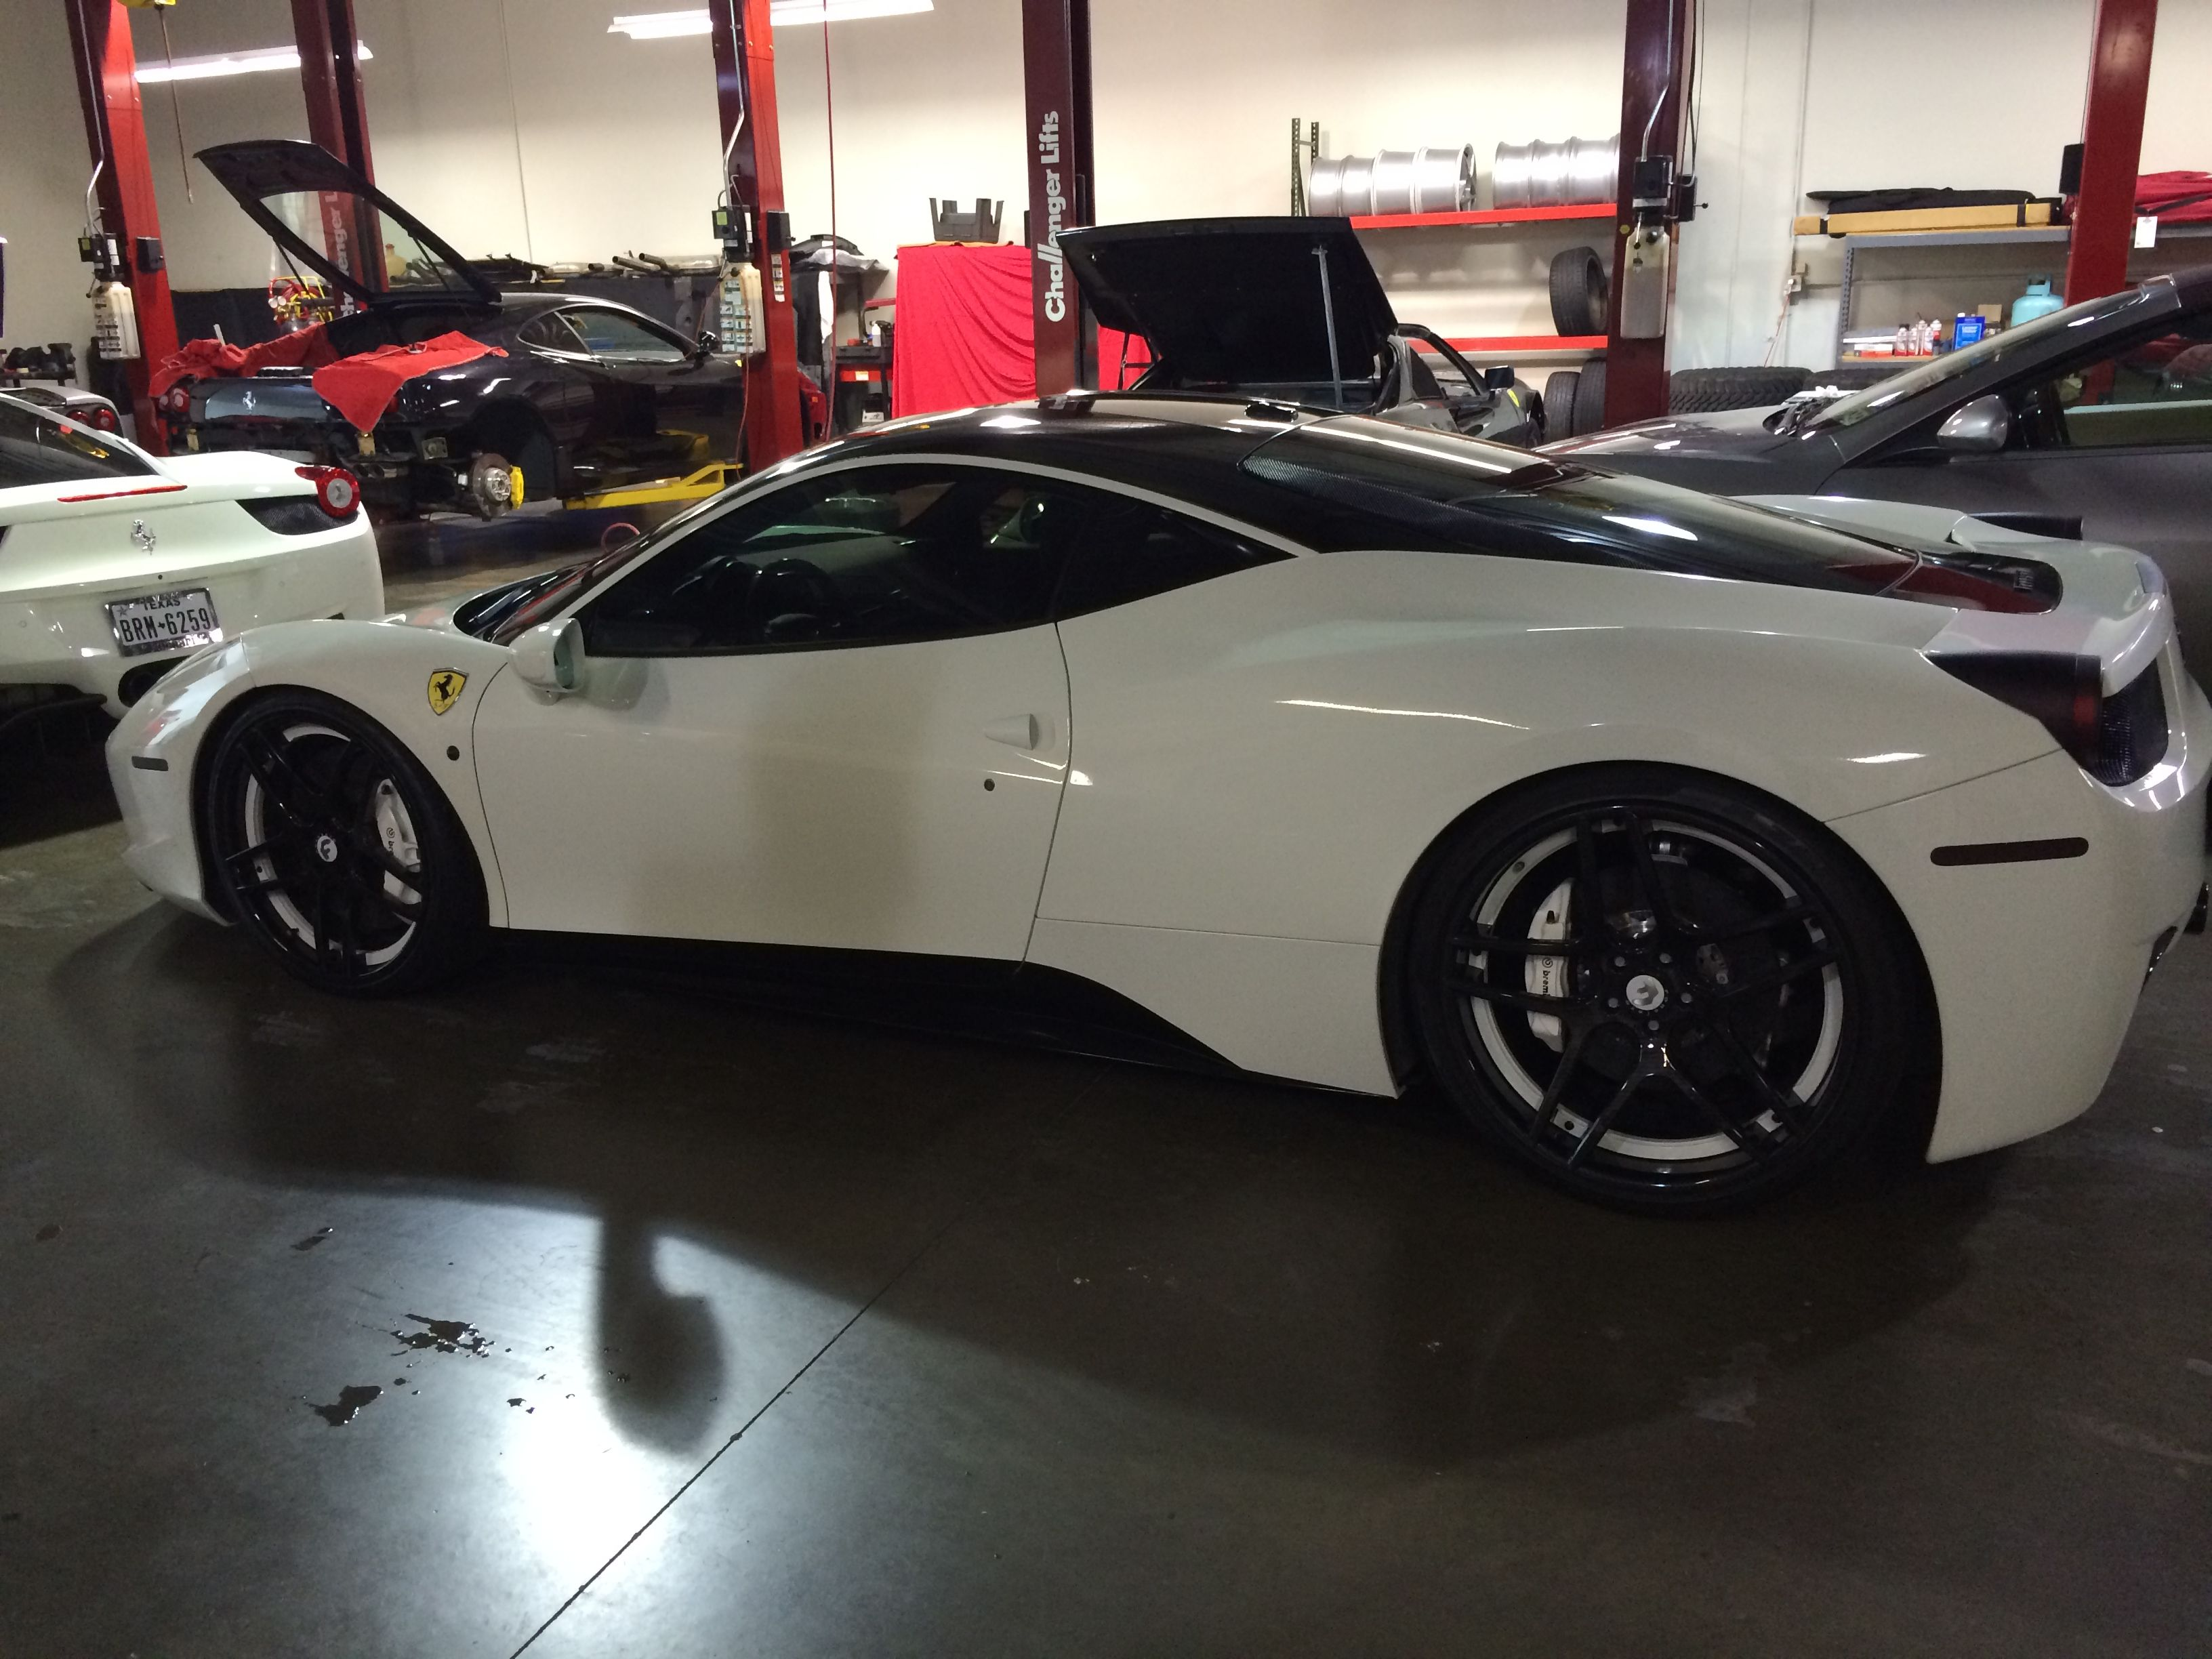 Getting ready to work on a special project for Ferrari. This custom Italia was in one of the garages of the dealership. We'll be filming a 458 Spider.